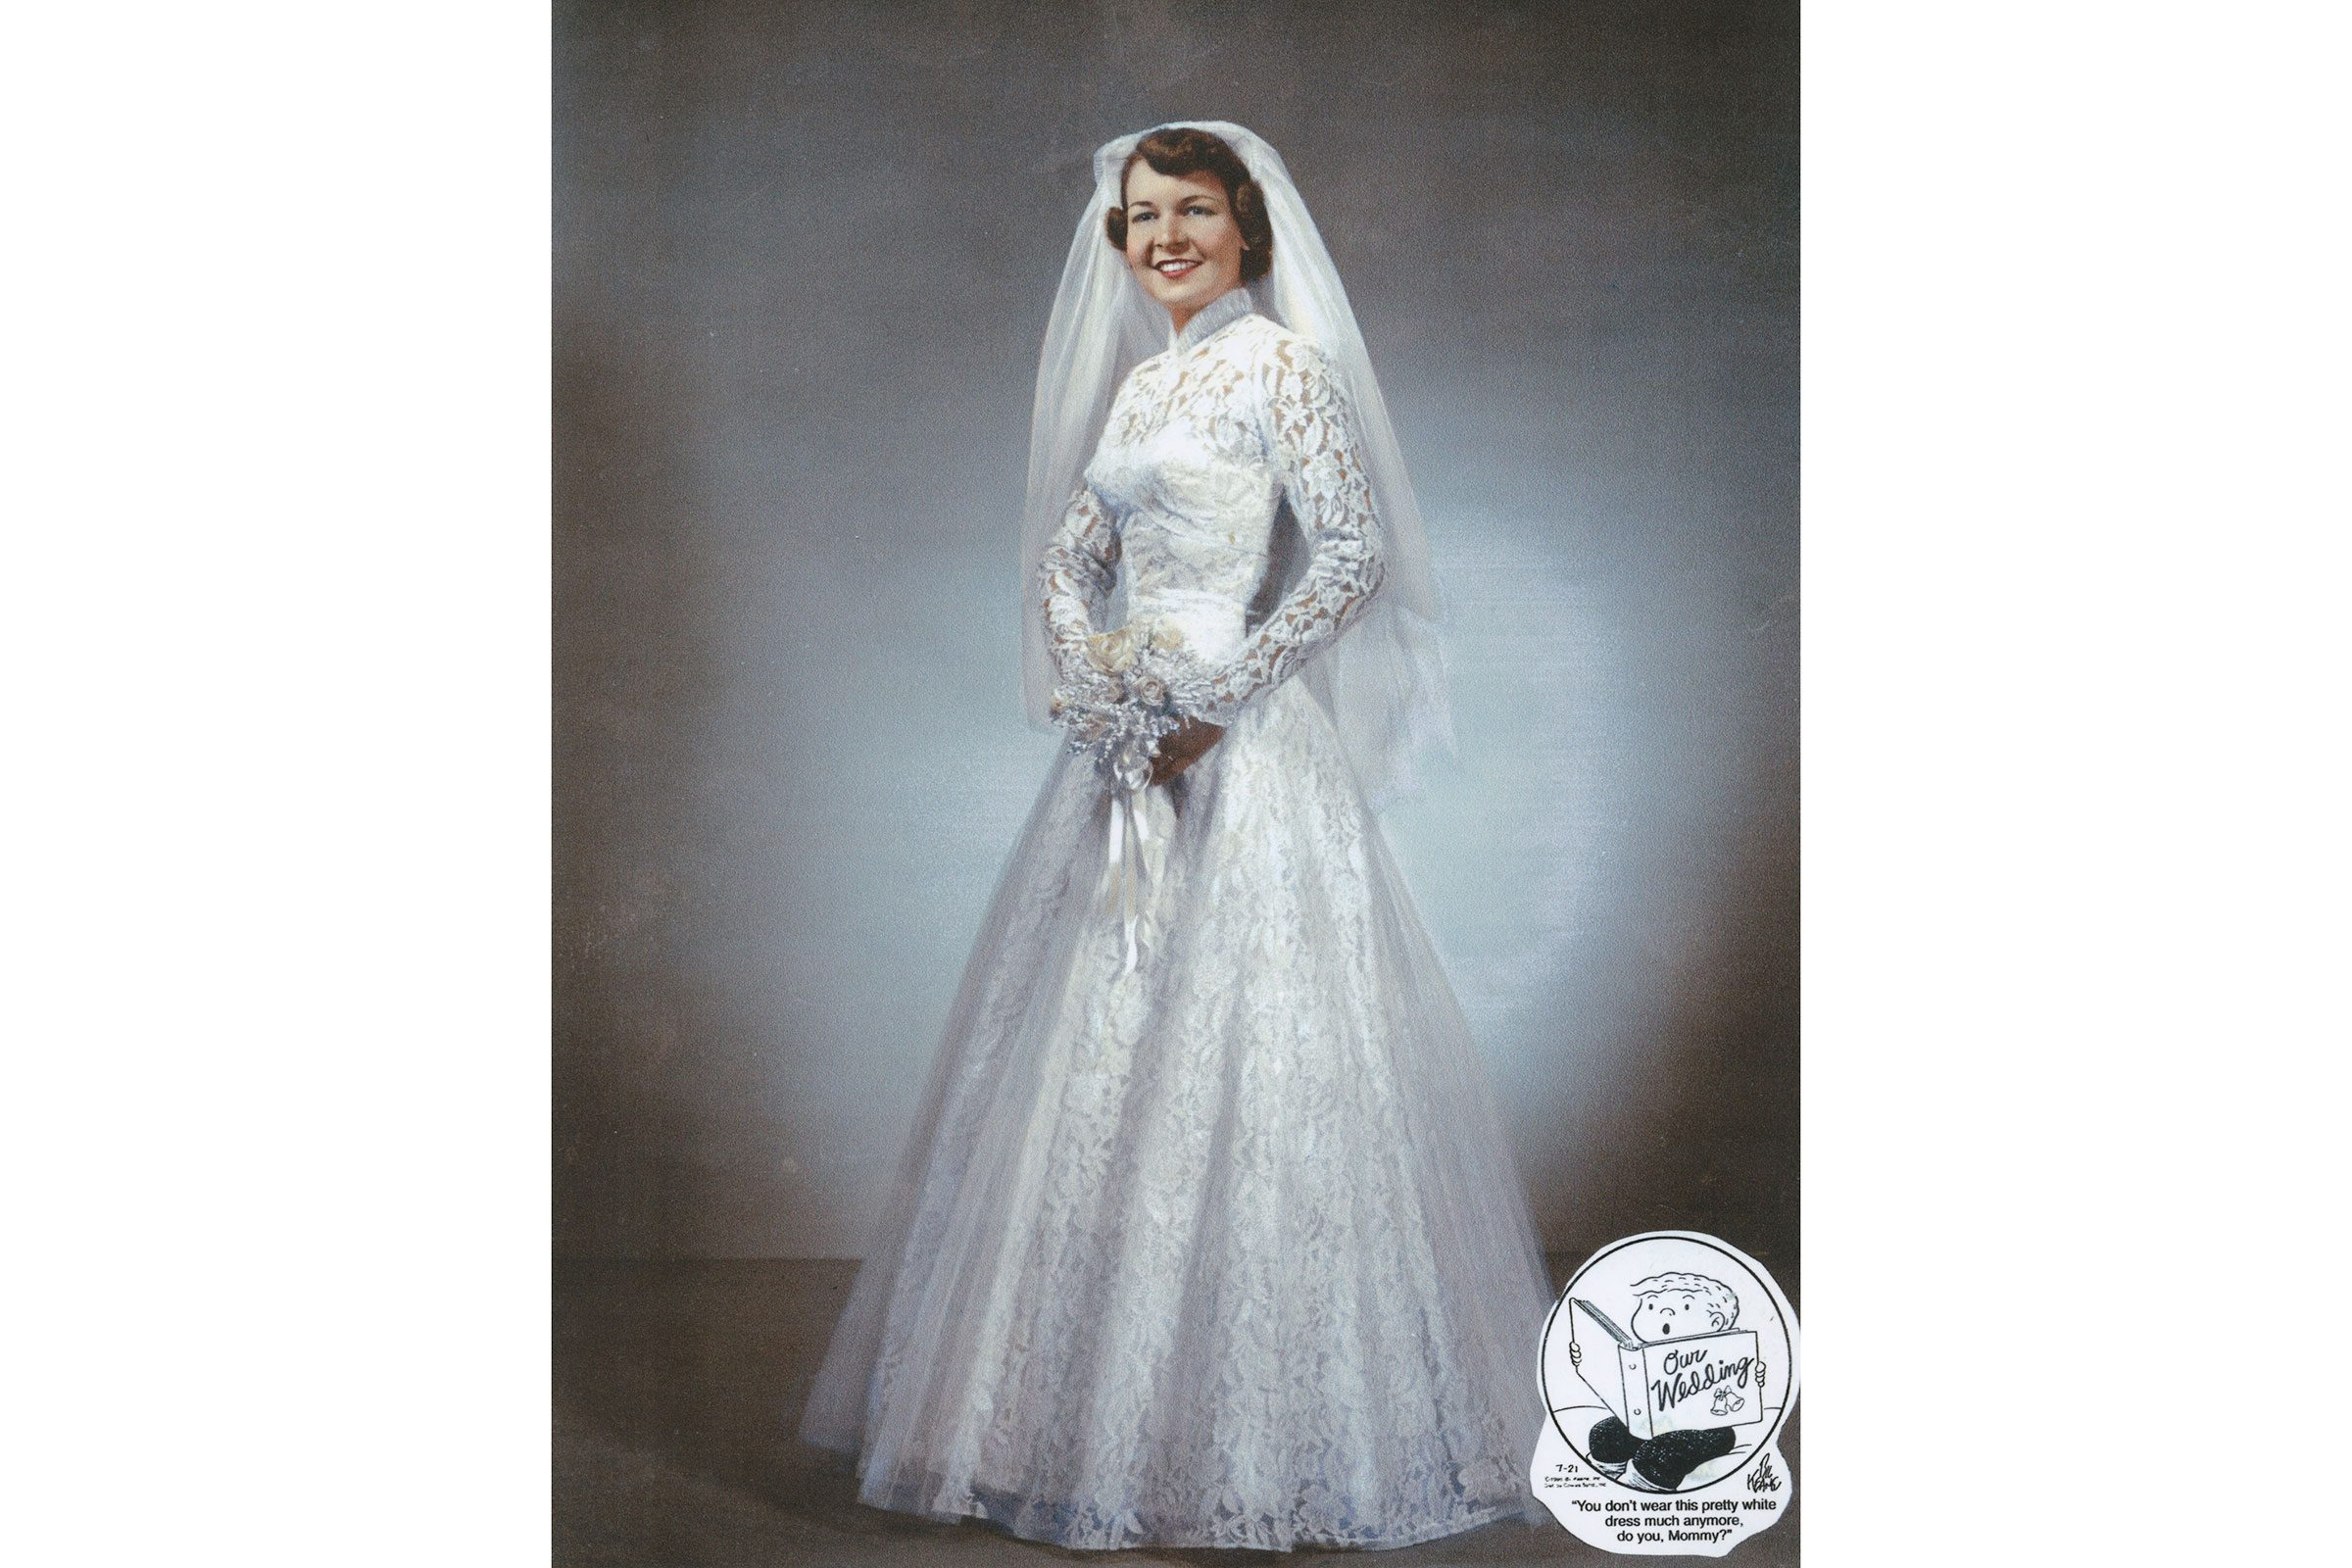 White dress dream meaning - 1954